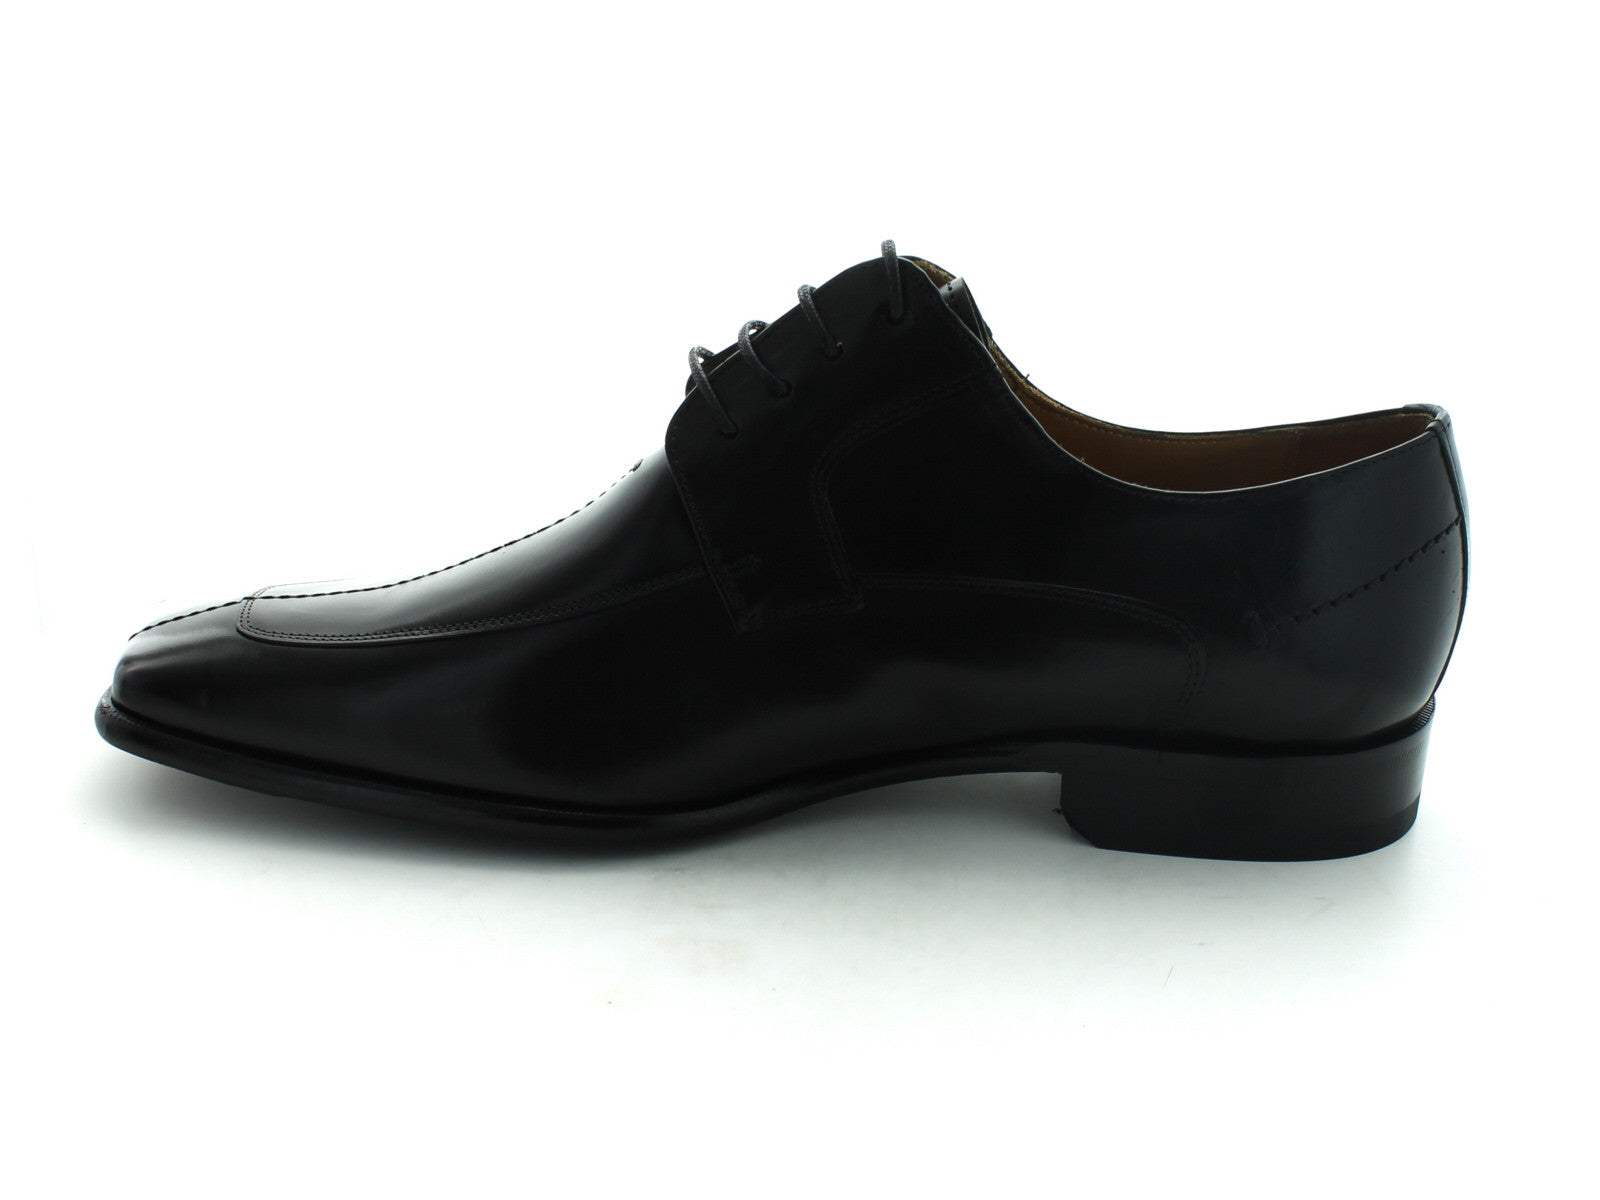 Mezlan Malaga in Black Calfskin inner view